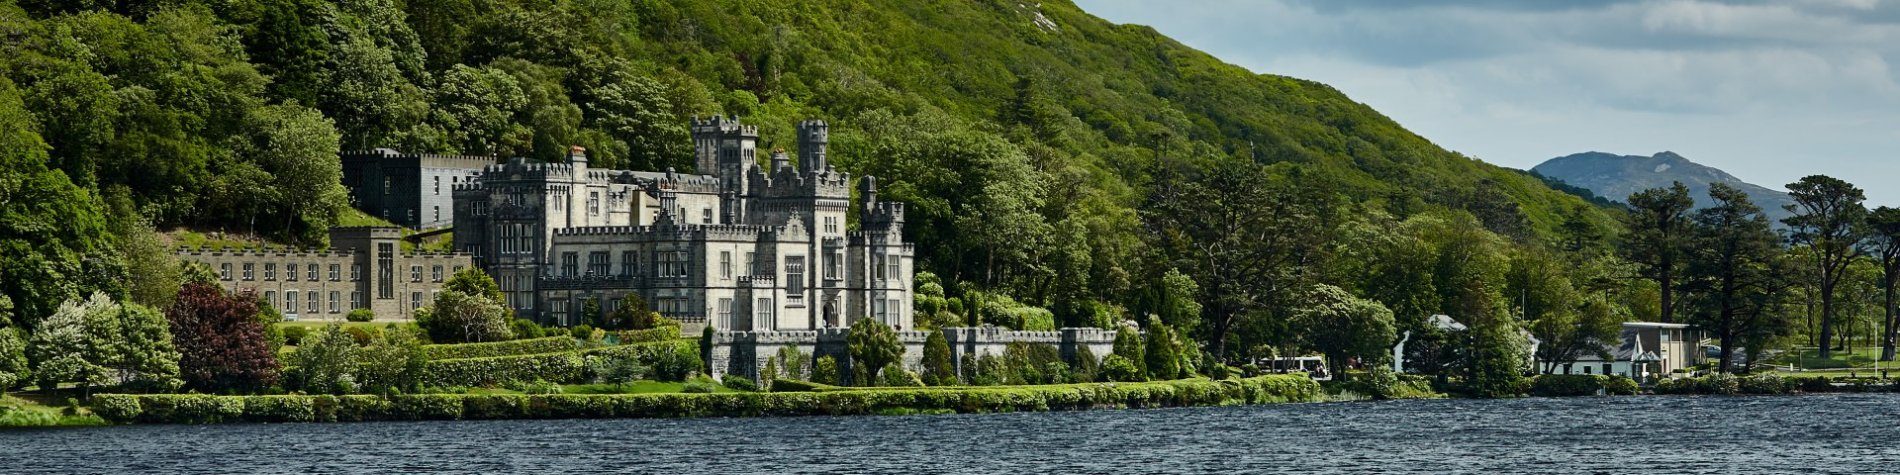 Kylemore Abbey Neo Gothic Castle Landscape - Galway's Attractions